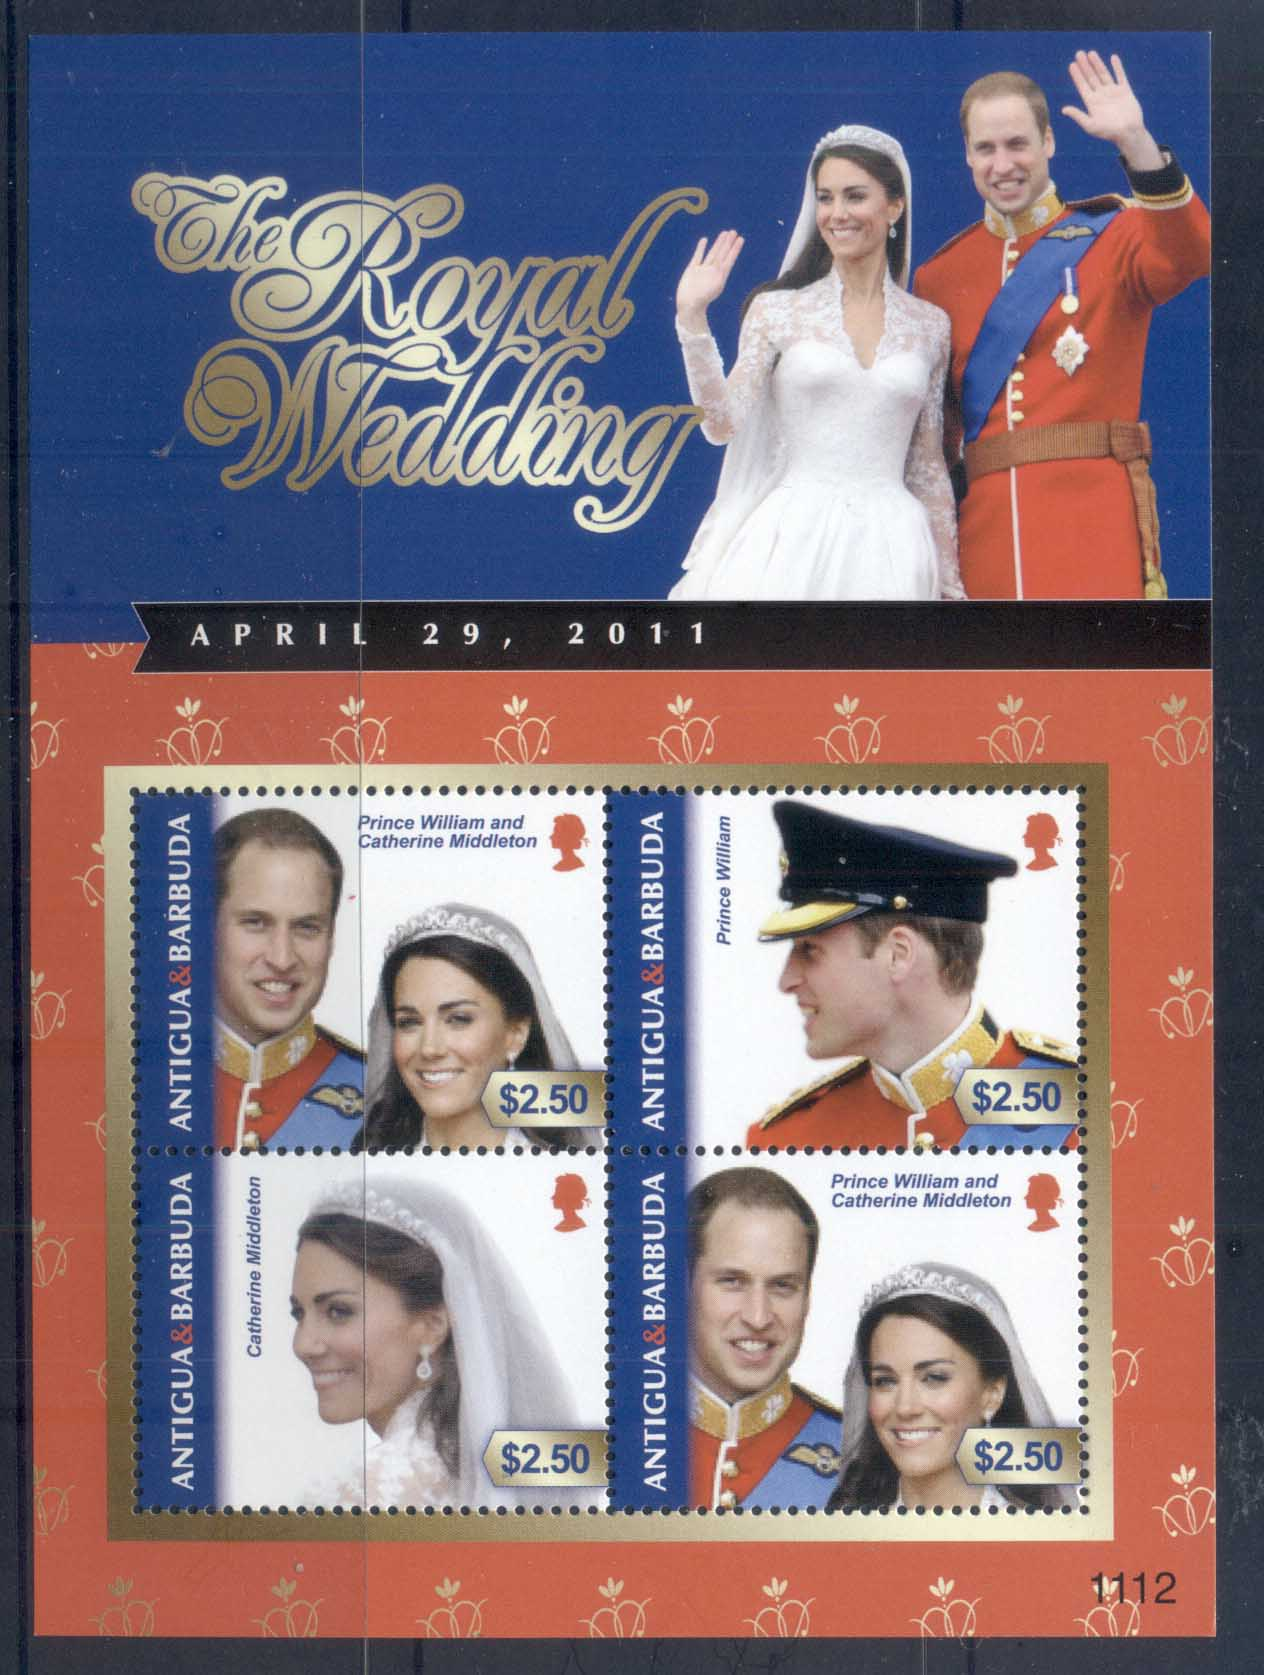 Antigua & Barbuda 2011 Royal Wedding William & Kate #1112 $2.50 MS MUH